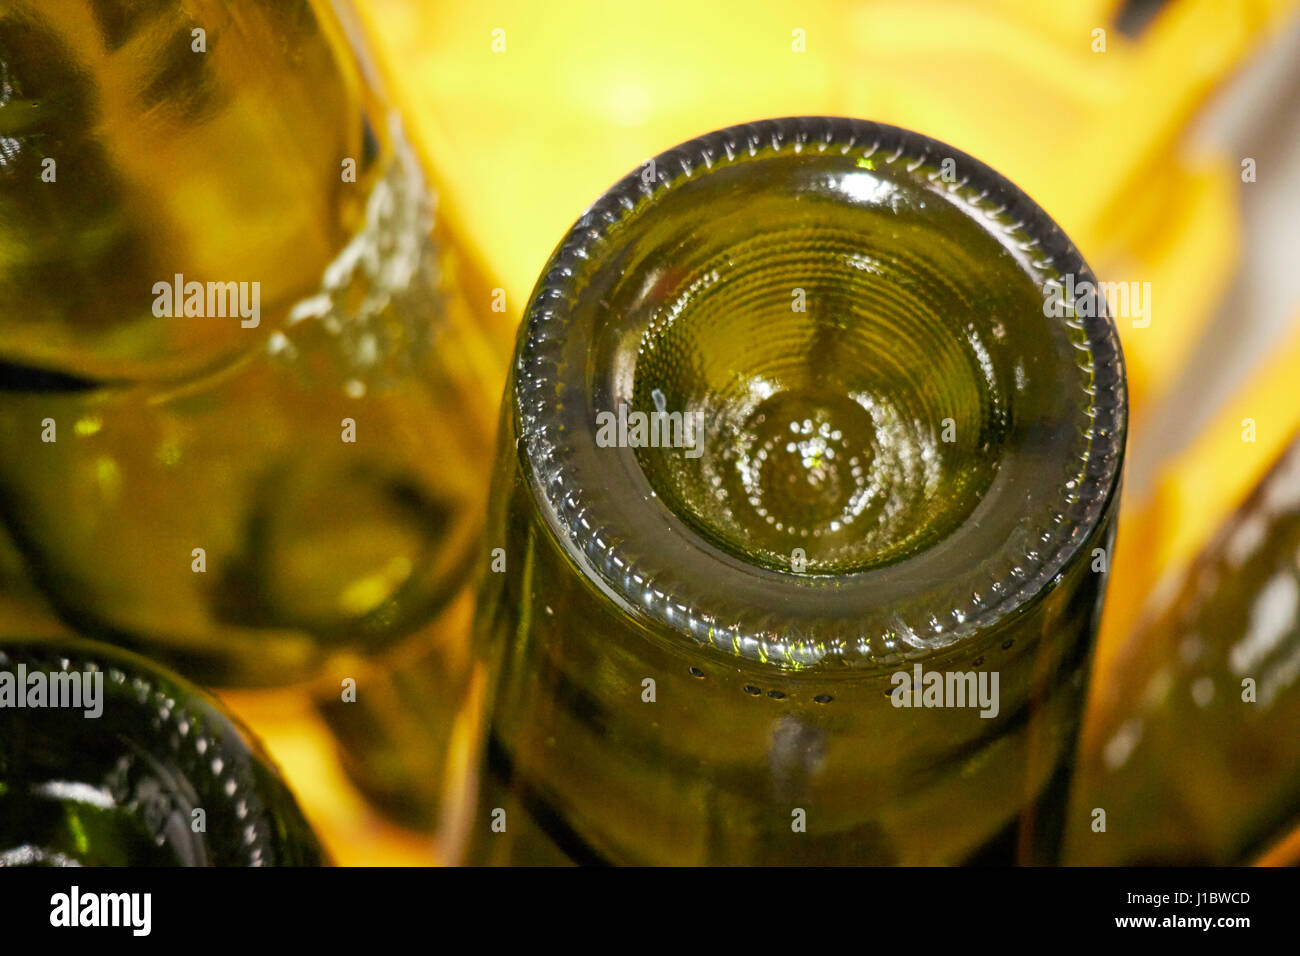 used wine bottles drying on a bottle tree for home wine production - Stock Image